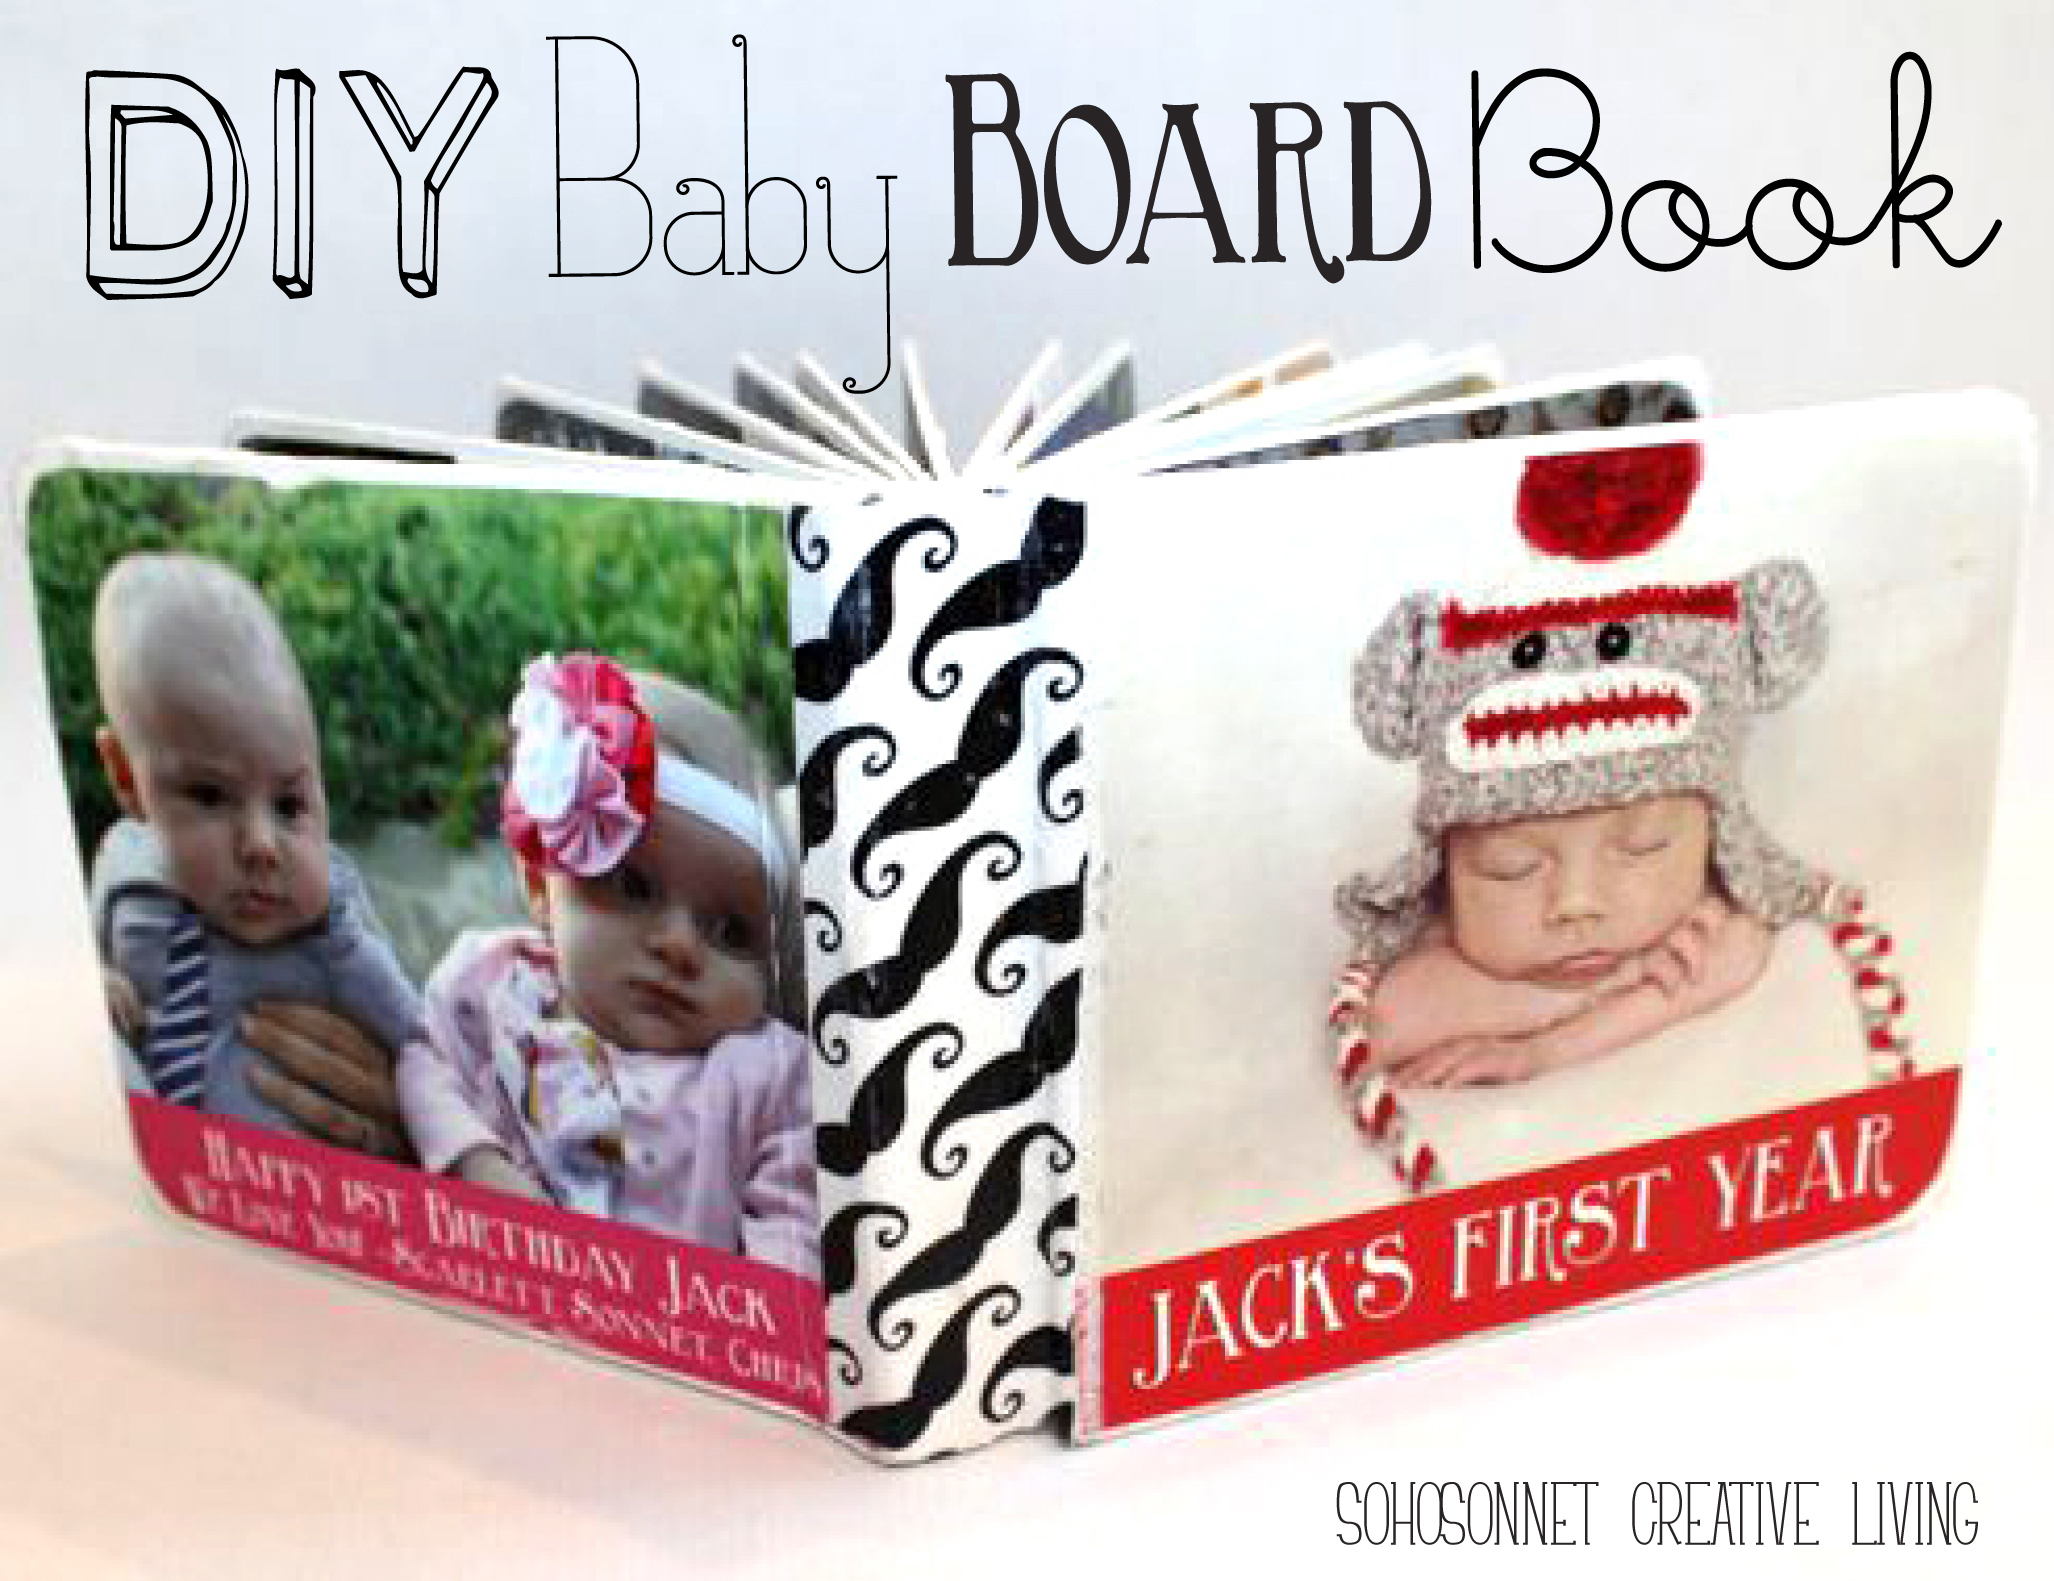 diy baby picture board book sohosonnet creative living